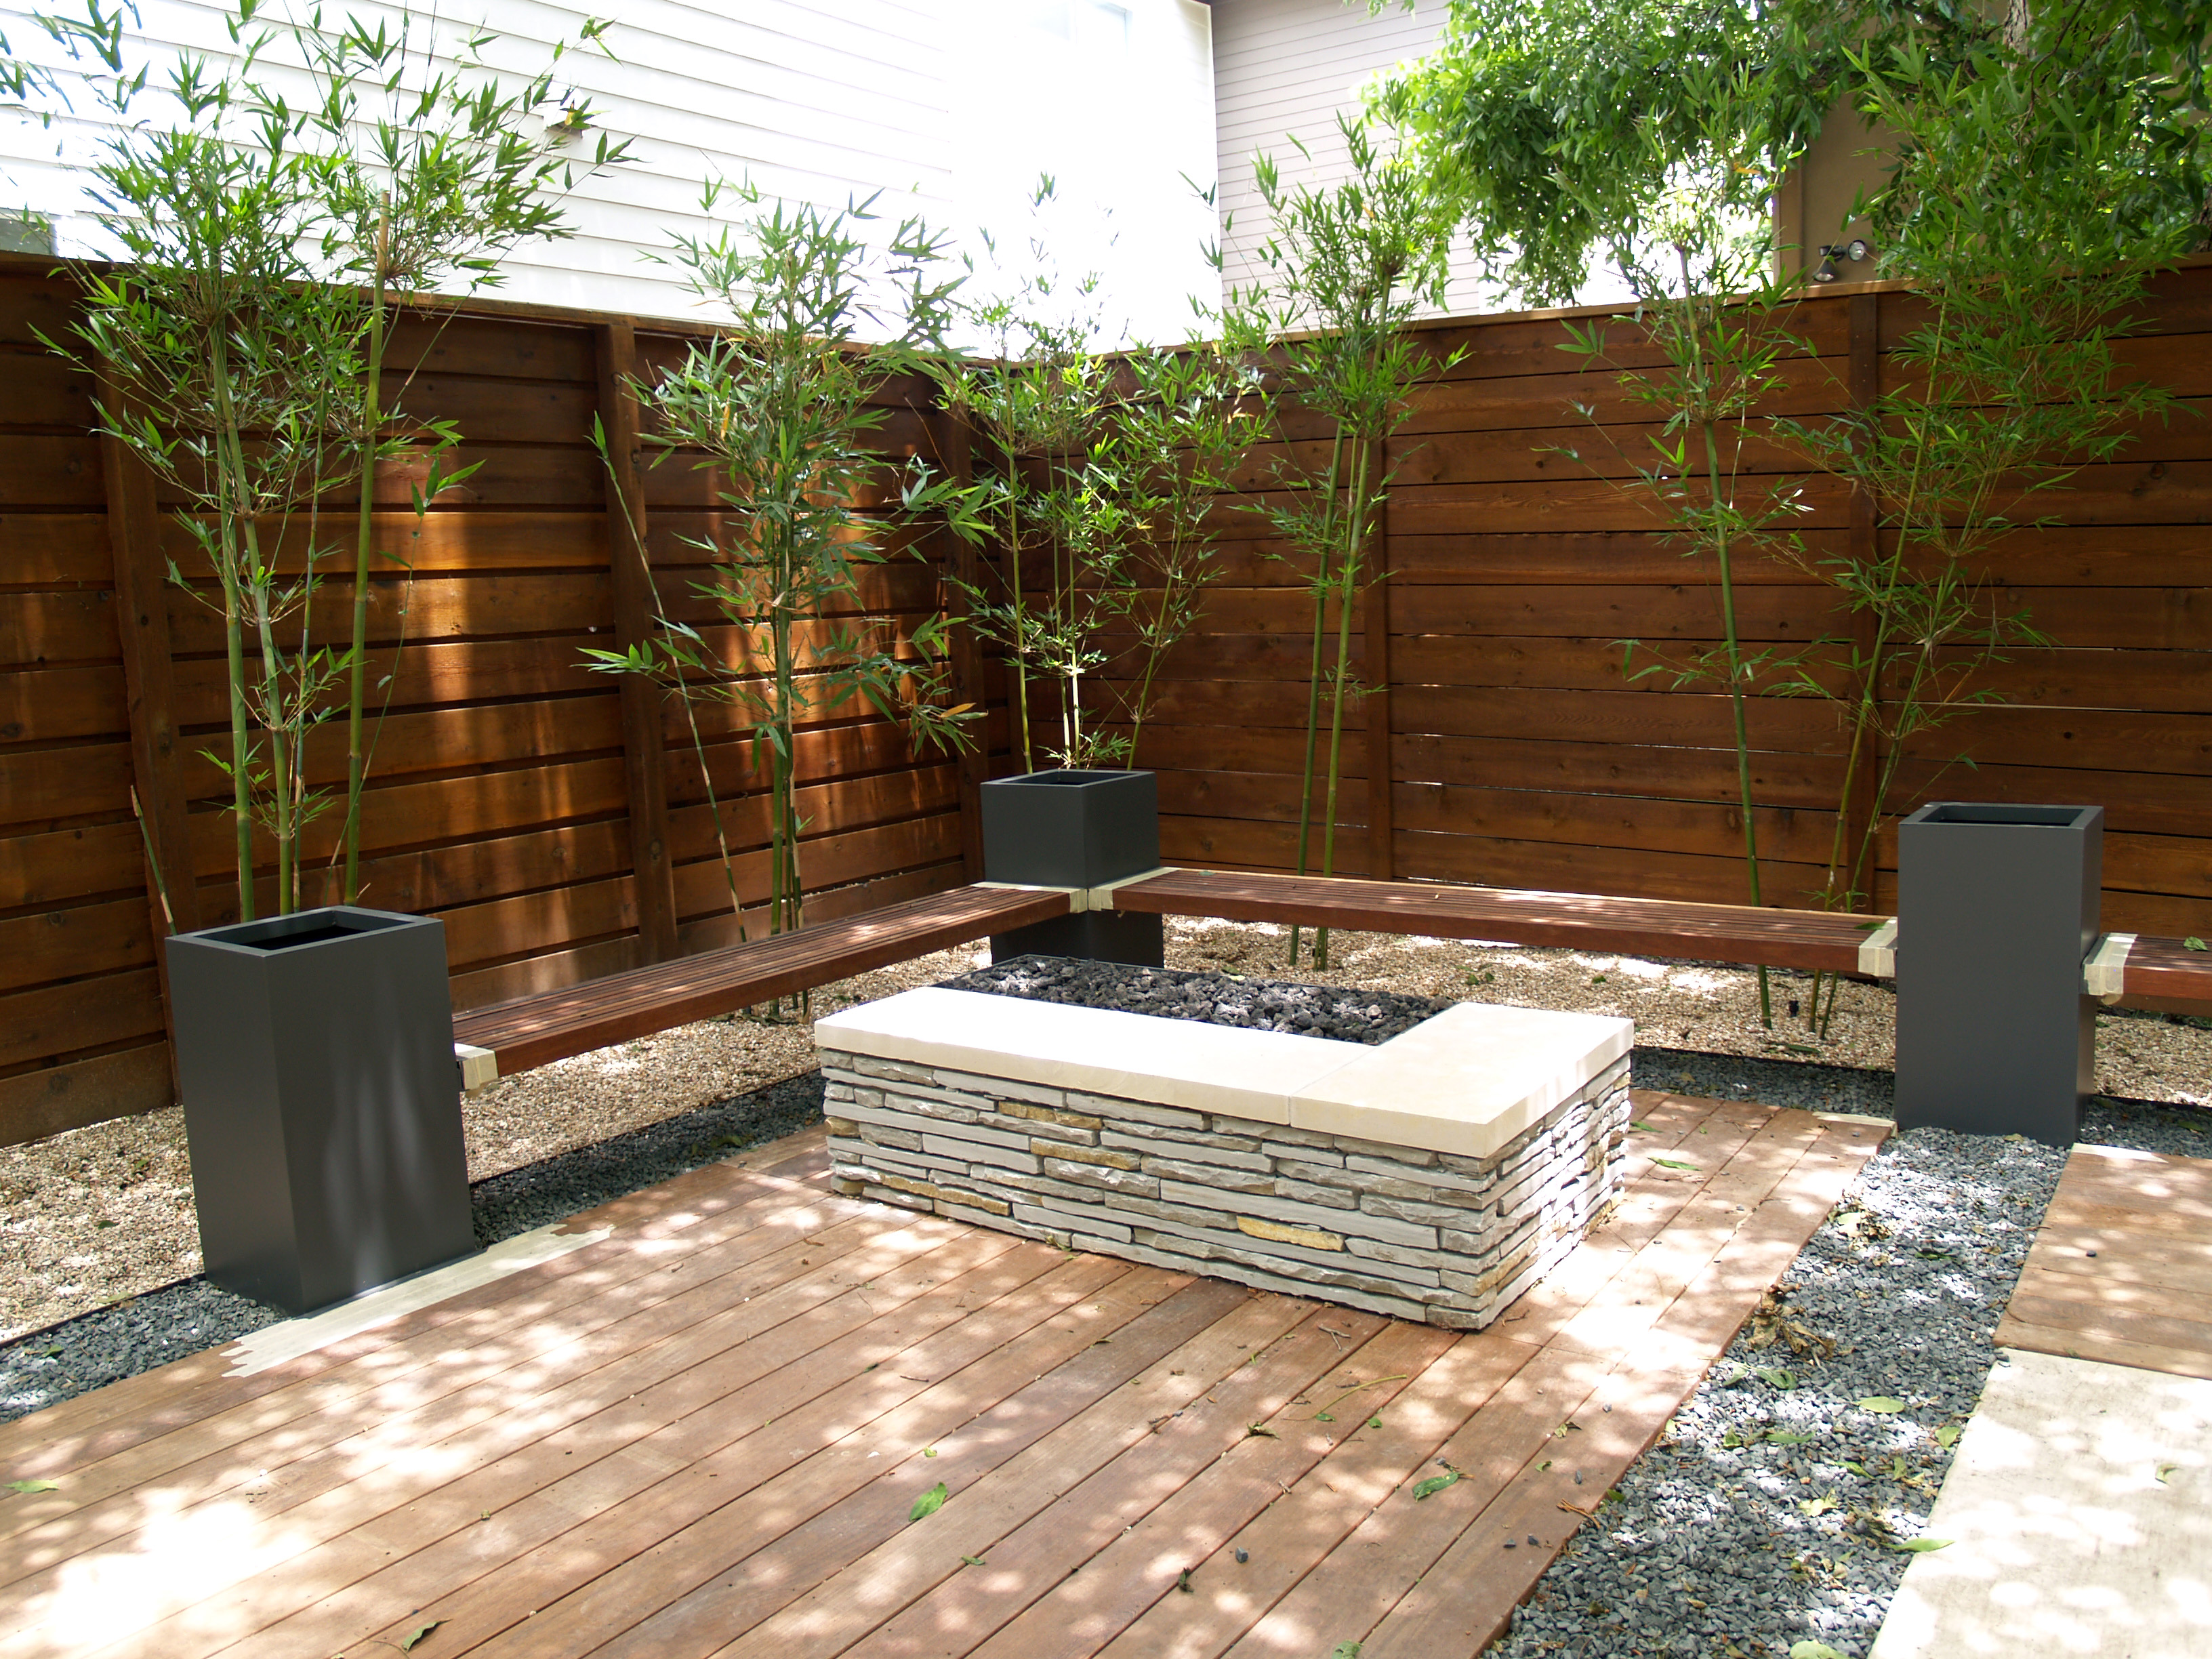 Japanese Home Design Studio Apartments Steel Planters Wood Benches And Bamboo Final Touches